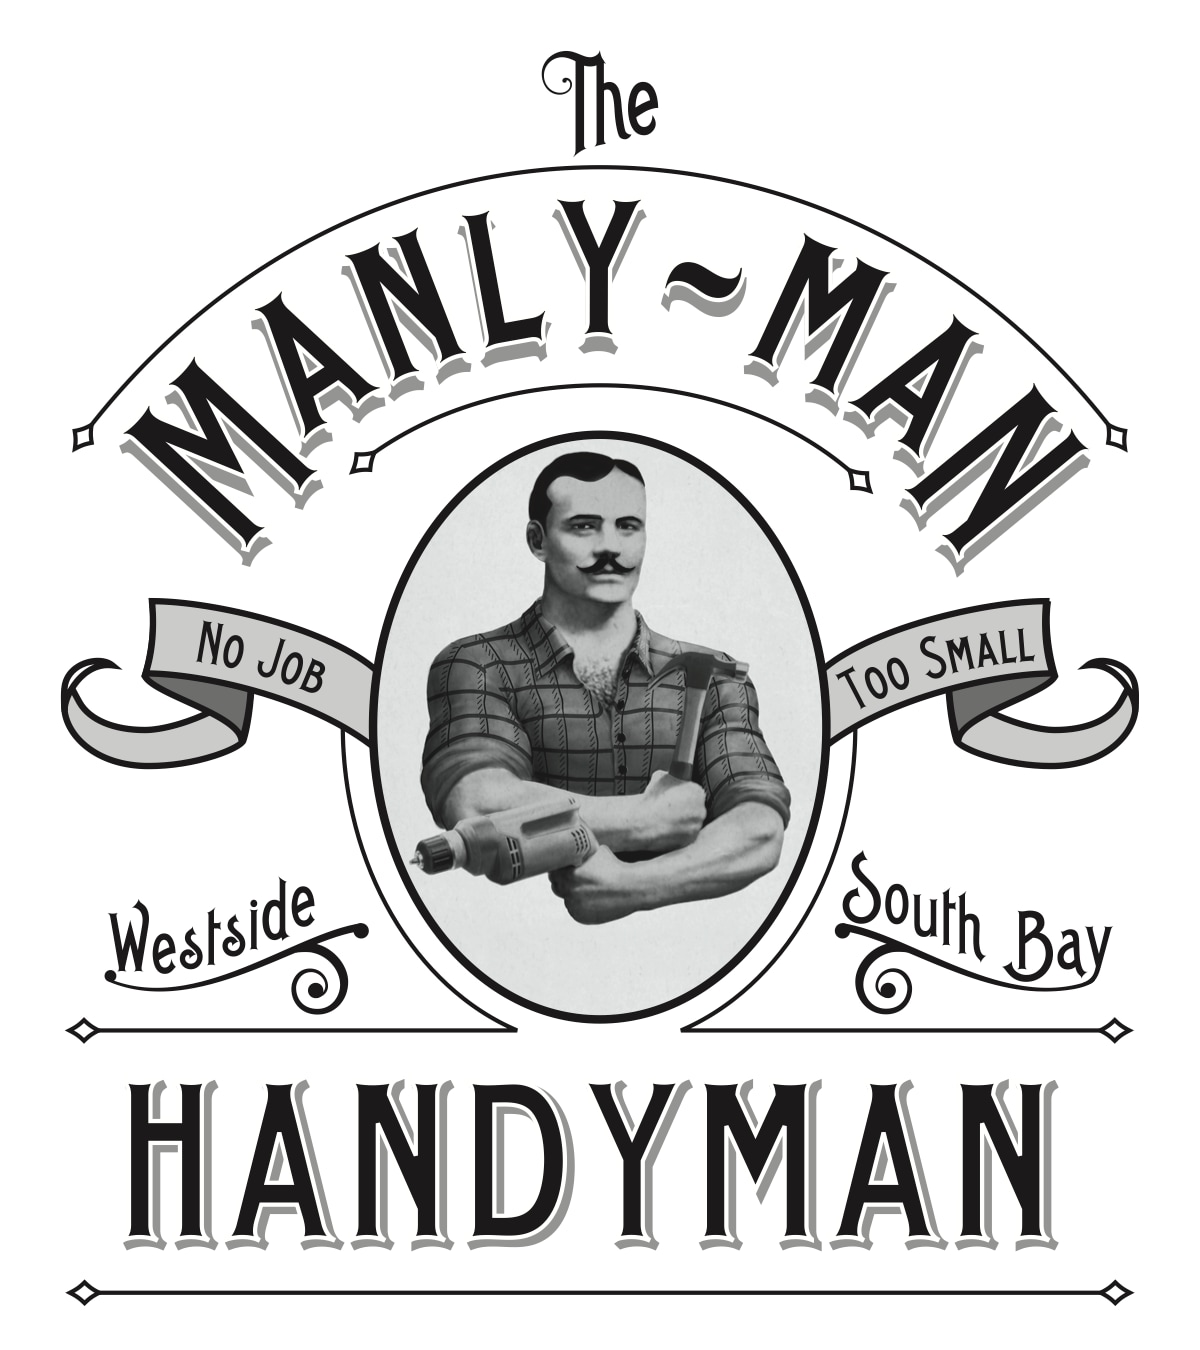 The Manly Man Handyman